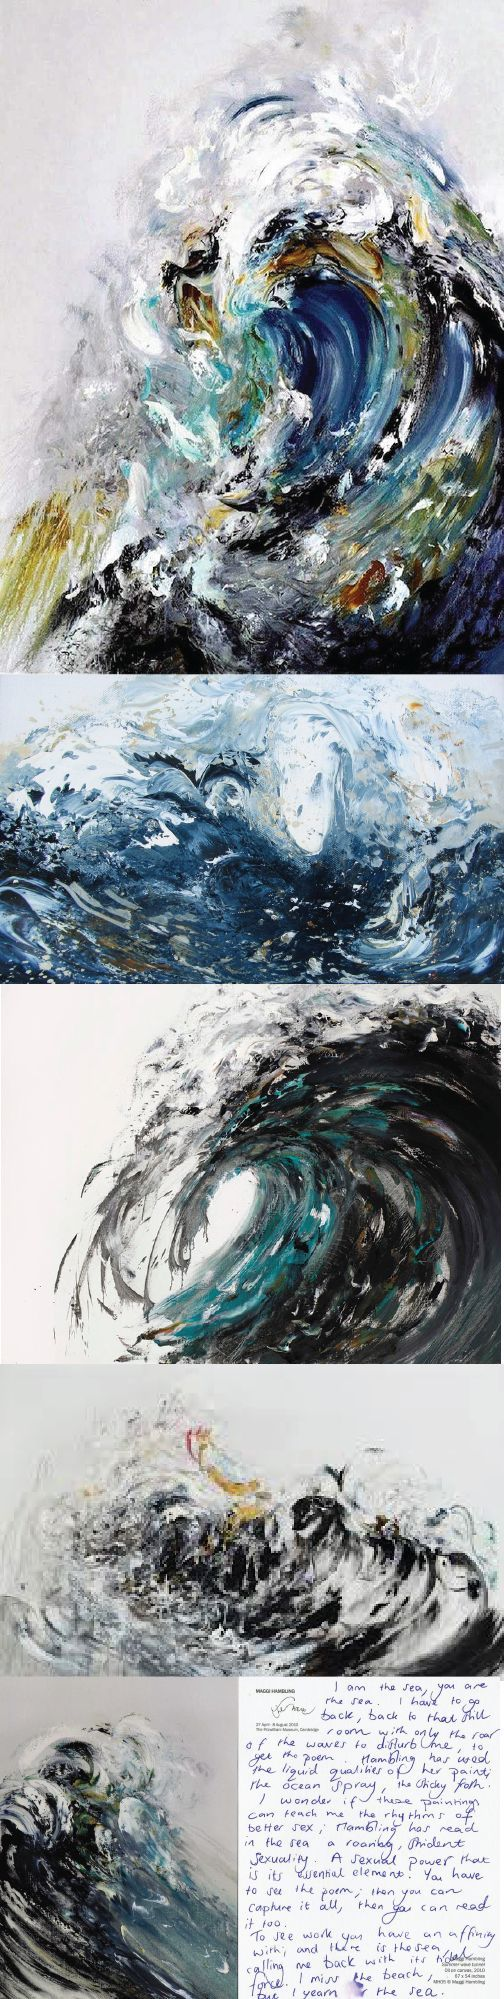 """""""I try to paint the sound of the sea"""", Maggi Hambling. The World's 12 Most Important Female Painters on TheCultureTrip.com. (Image via curiouspeeps.net):"""